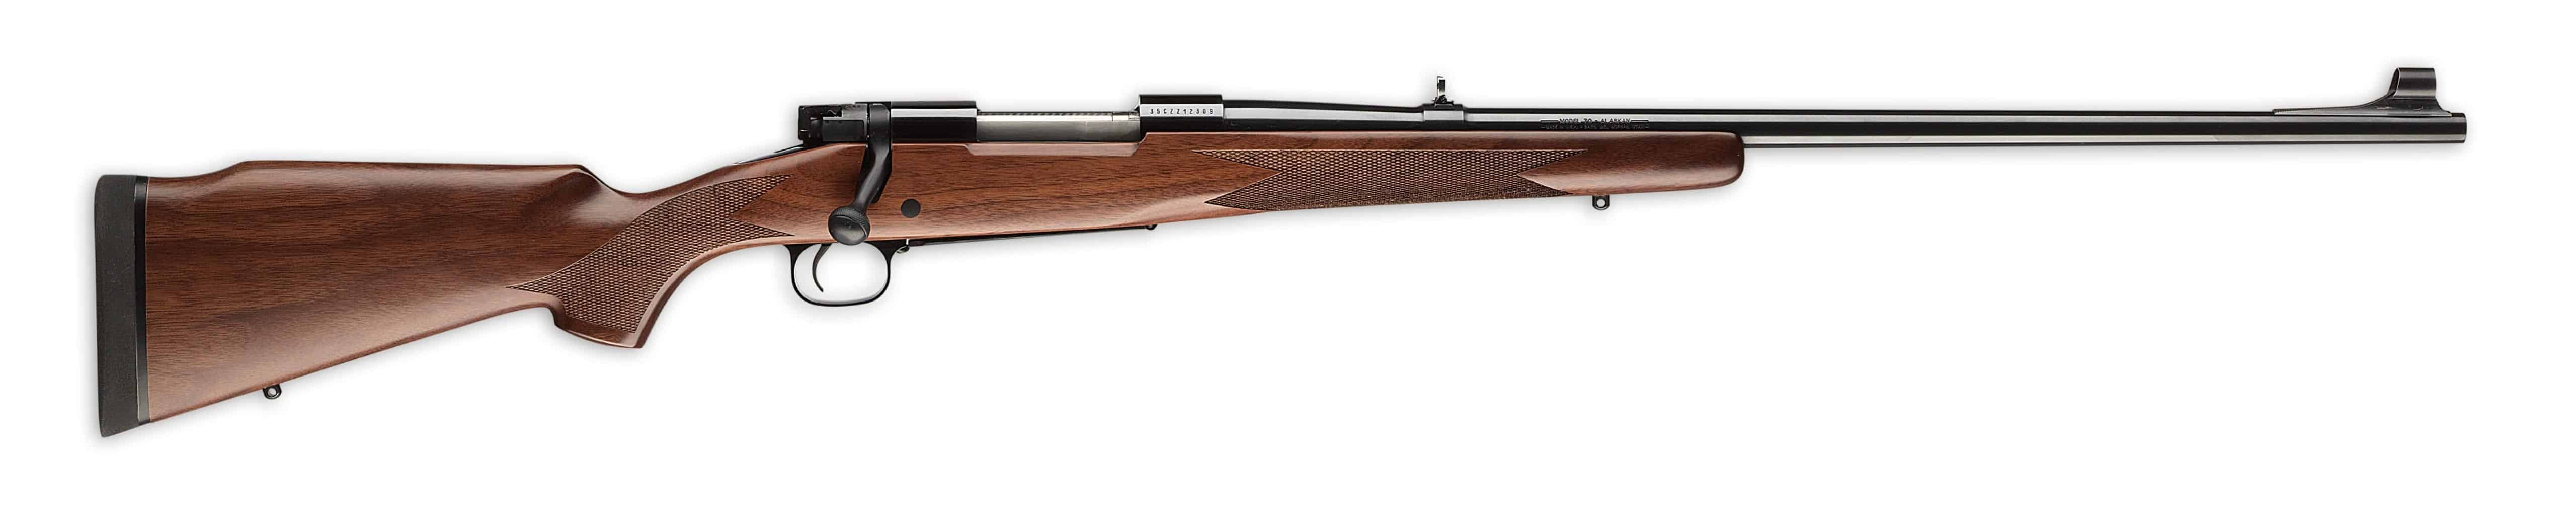 Winchester Model 70 Alaskan, 30-06, Walnut Stock, Pachmayr Recoil Pad,  Brushed Blued Finish, Open Sights, Hinged Floorplate, 25 0